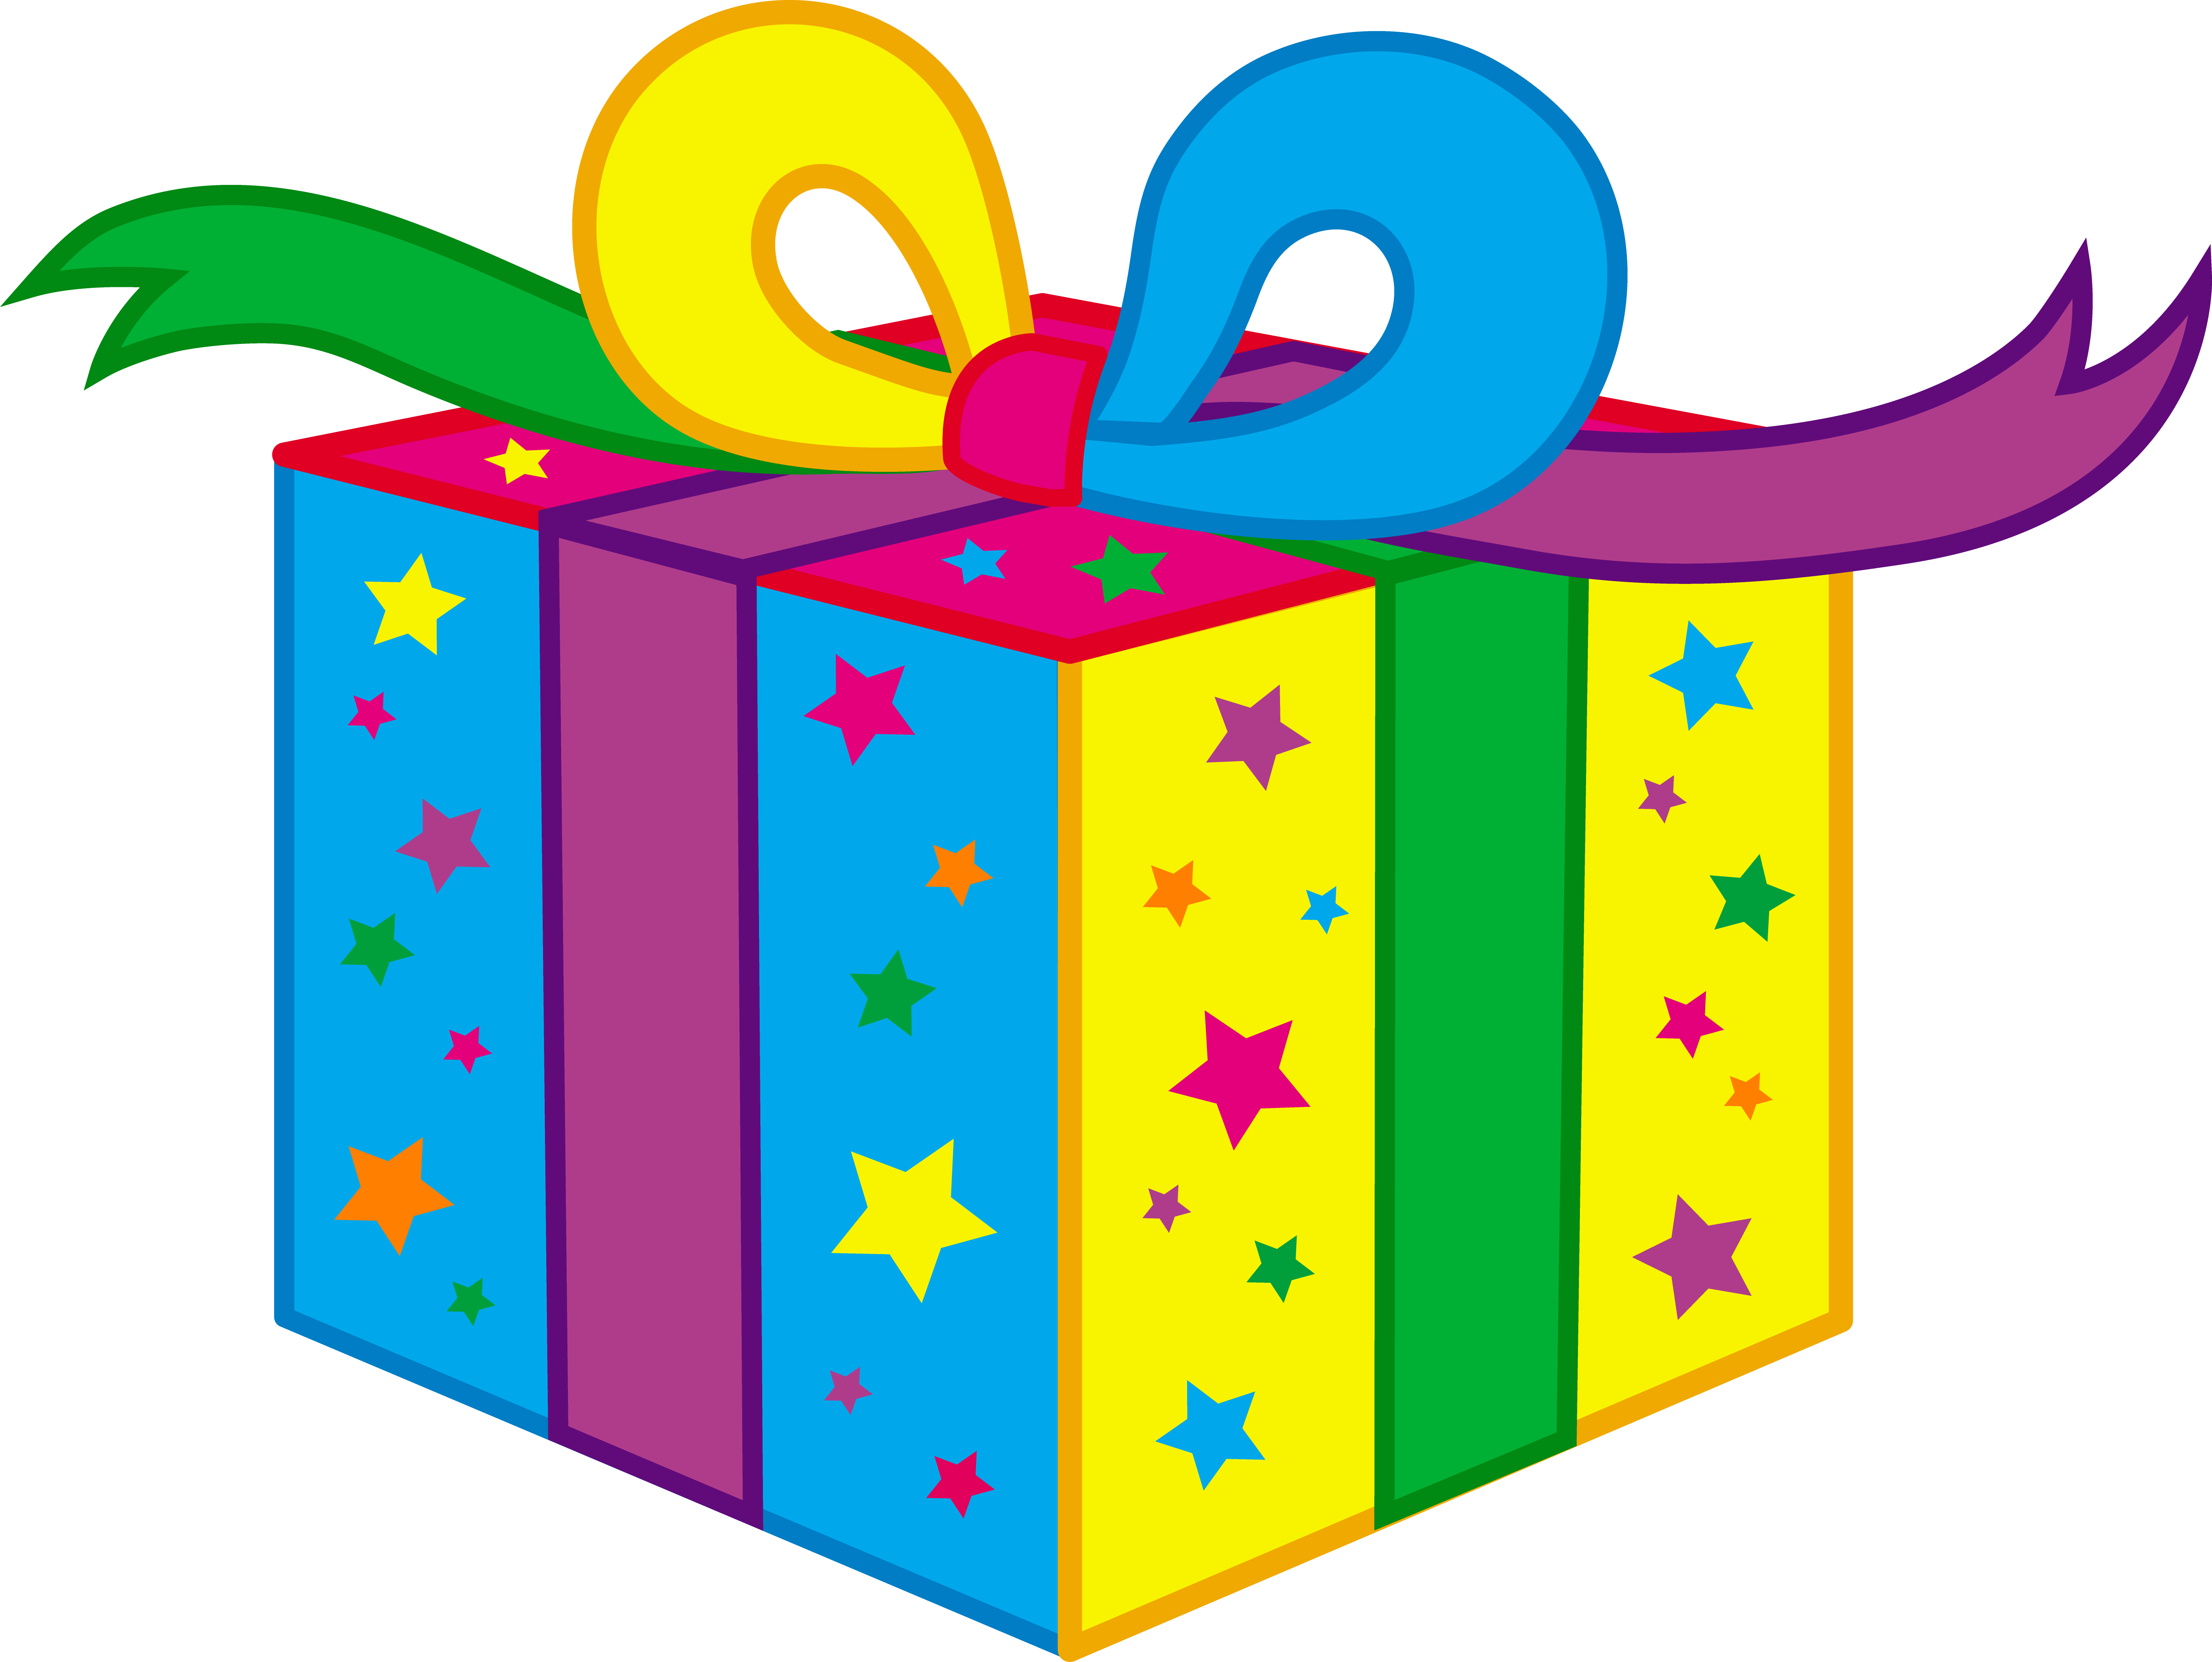 Birthday gift drawing at getdrawings free for personal use 6831x5132 kids birthday party present negle Image collections